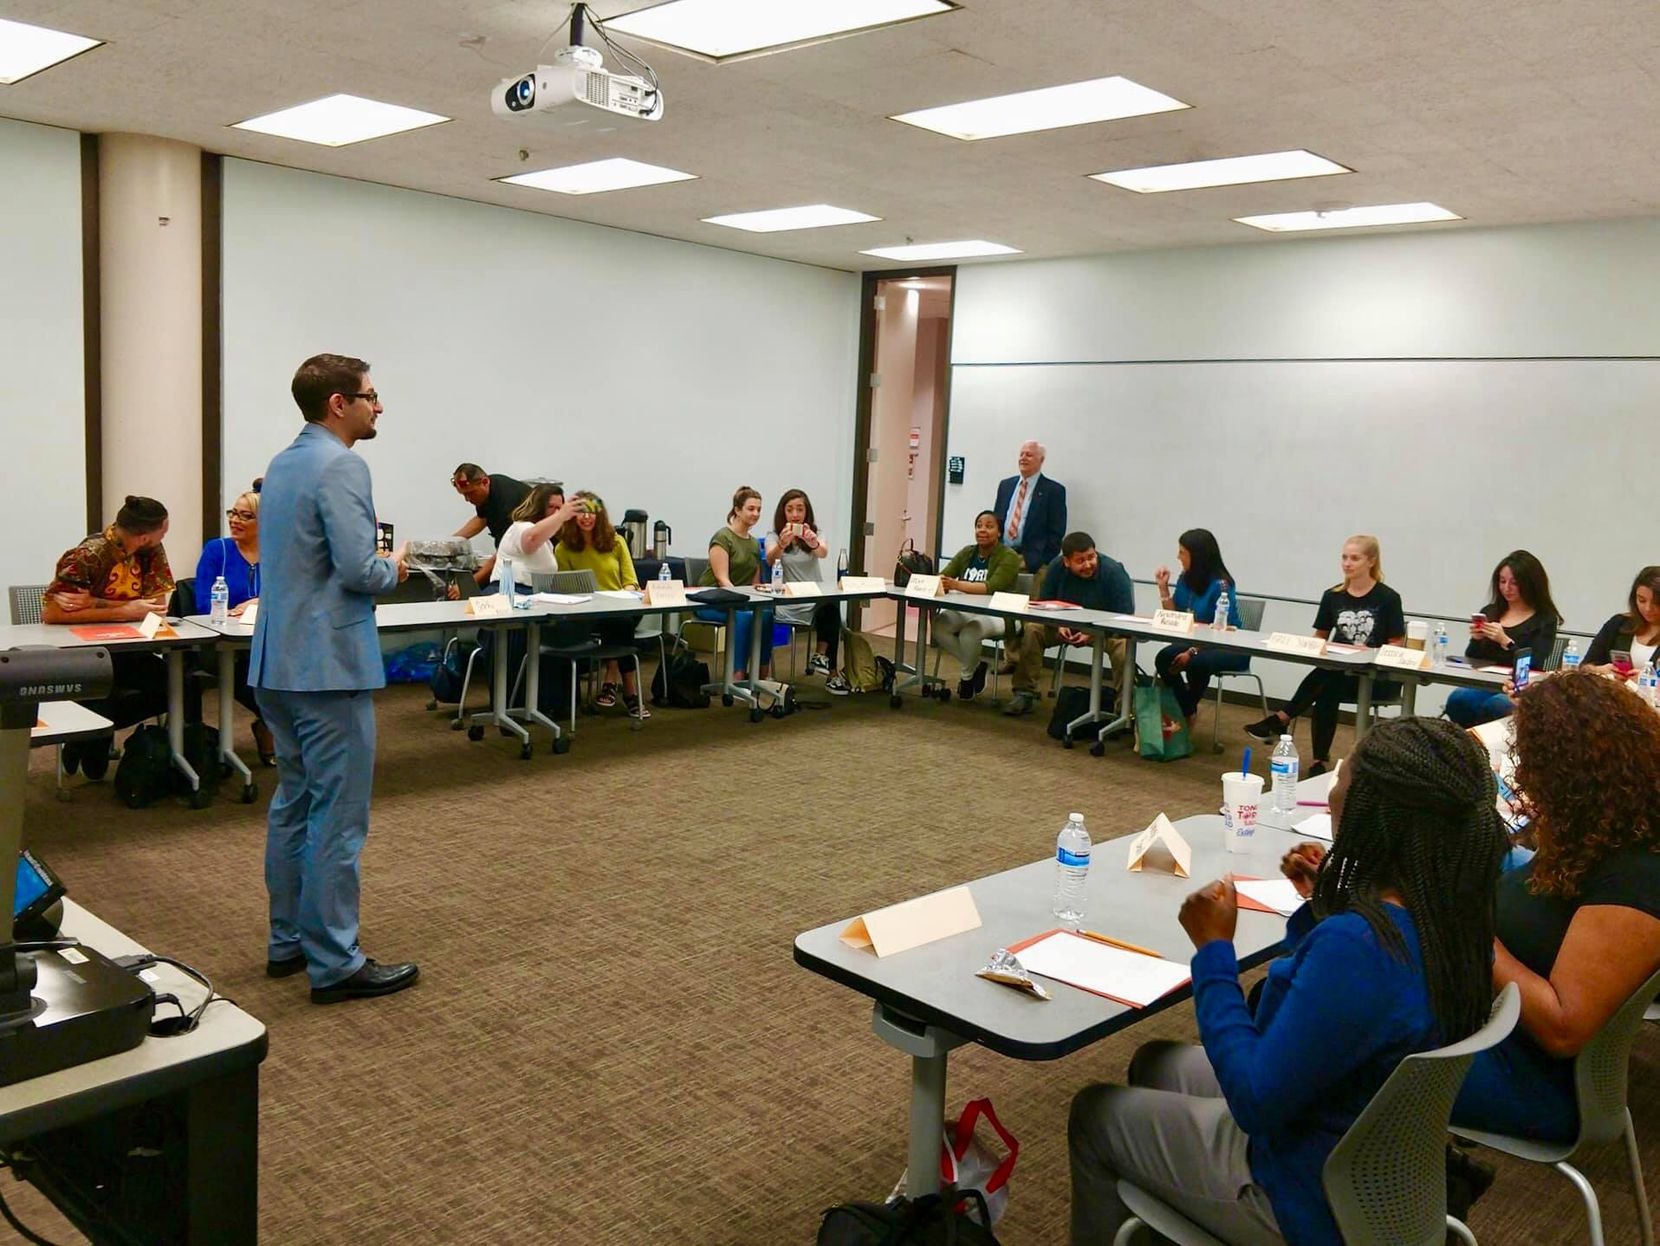 University of Texas at Austin associate professor of education David DeMatthews instructs teachers who want to become administrators. He says 2020 is the hardest year in public education for everybody. It's not uncommon for adult students in his class to break down and cry due to frustrations.